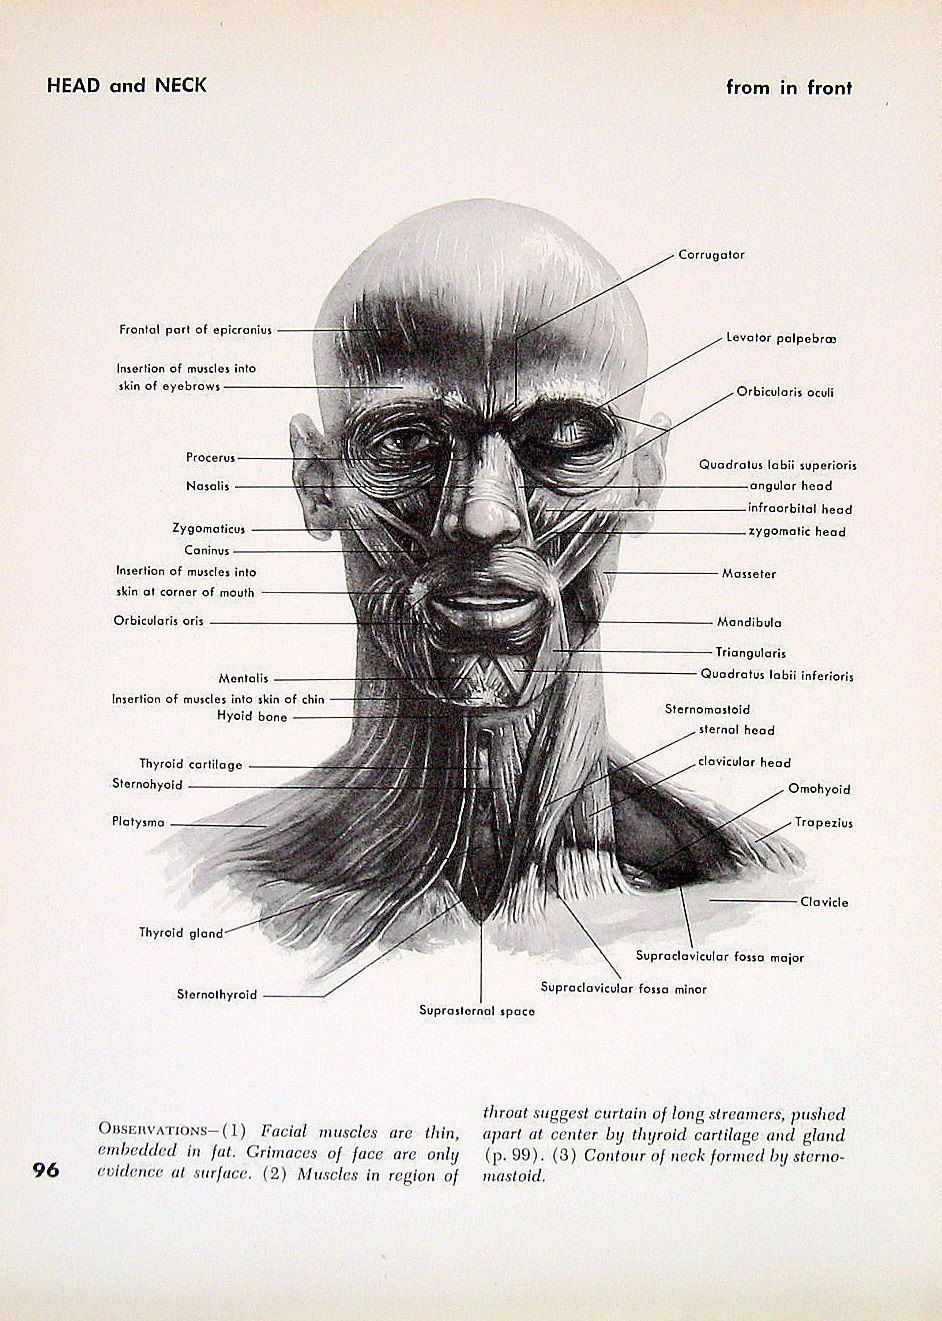 Head and Neck Anatomy - 1951 Vintage Anatomy Book Page - Head and ...